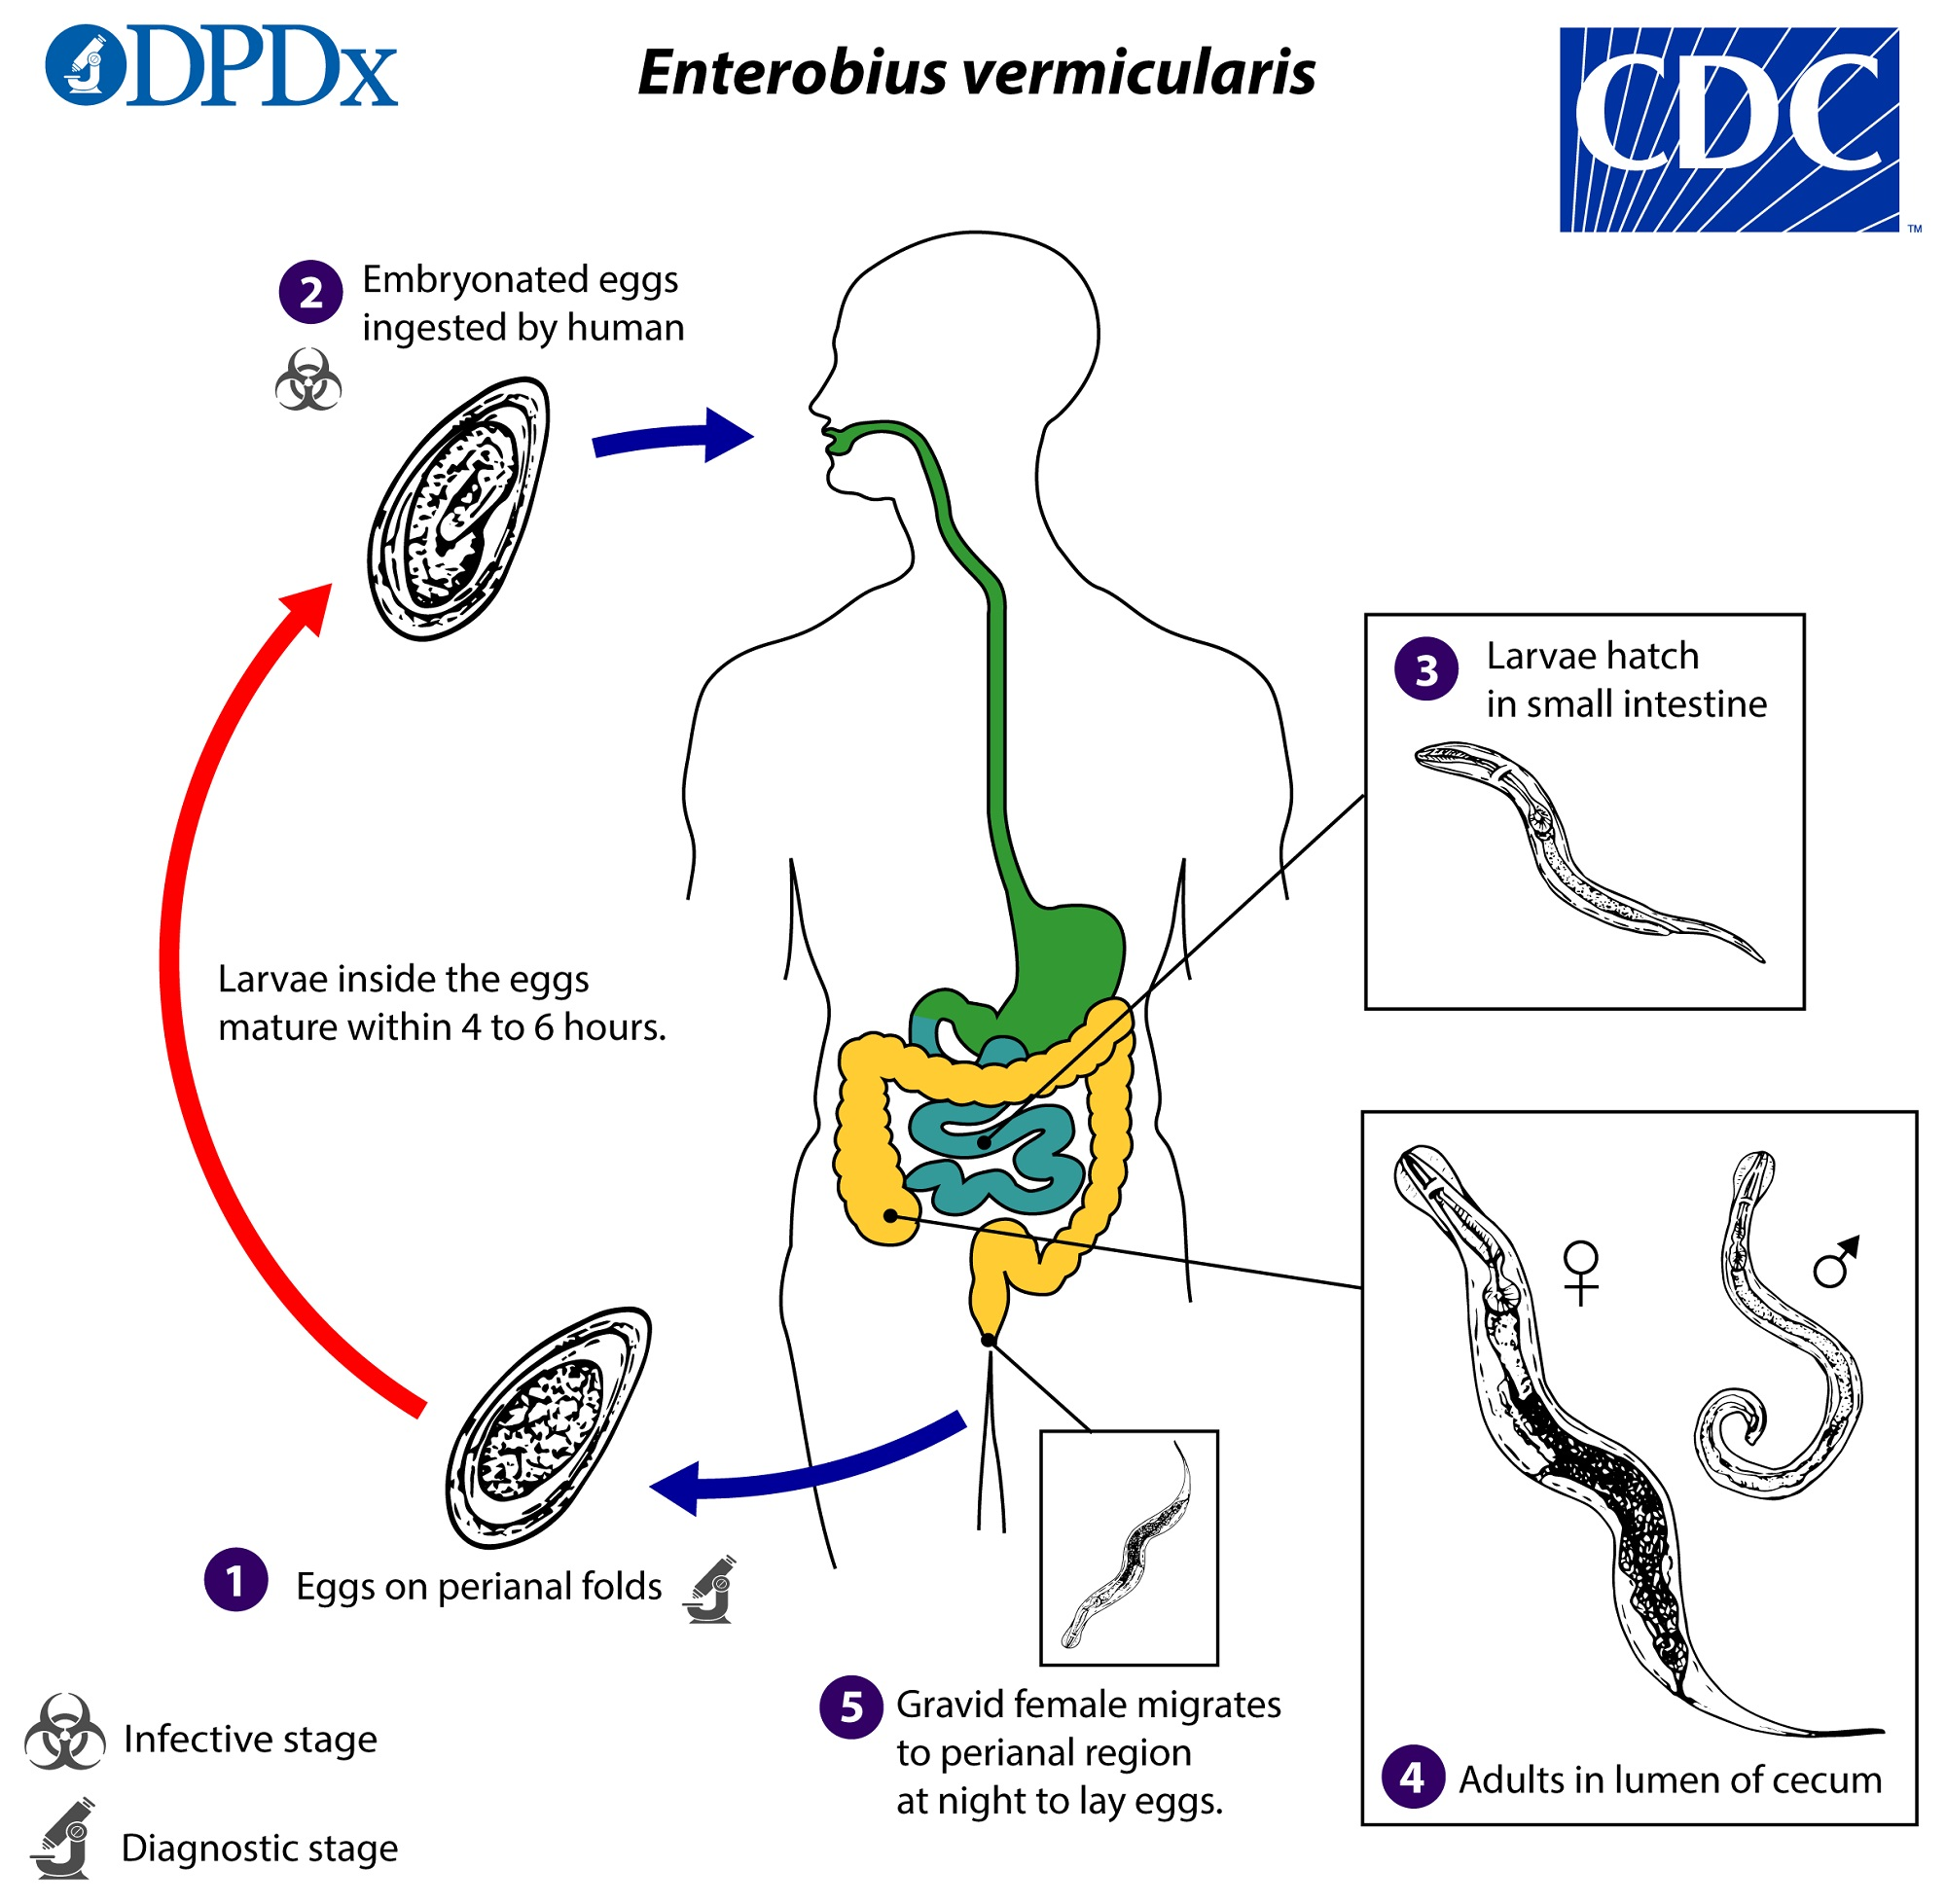 enterobius vermicularis diagram)